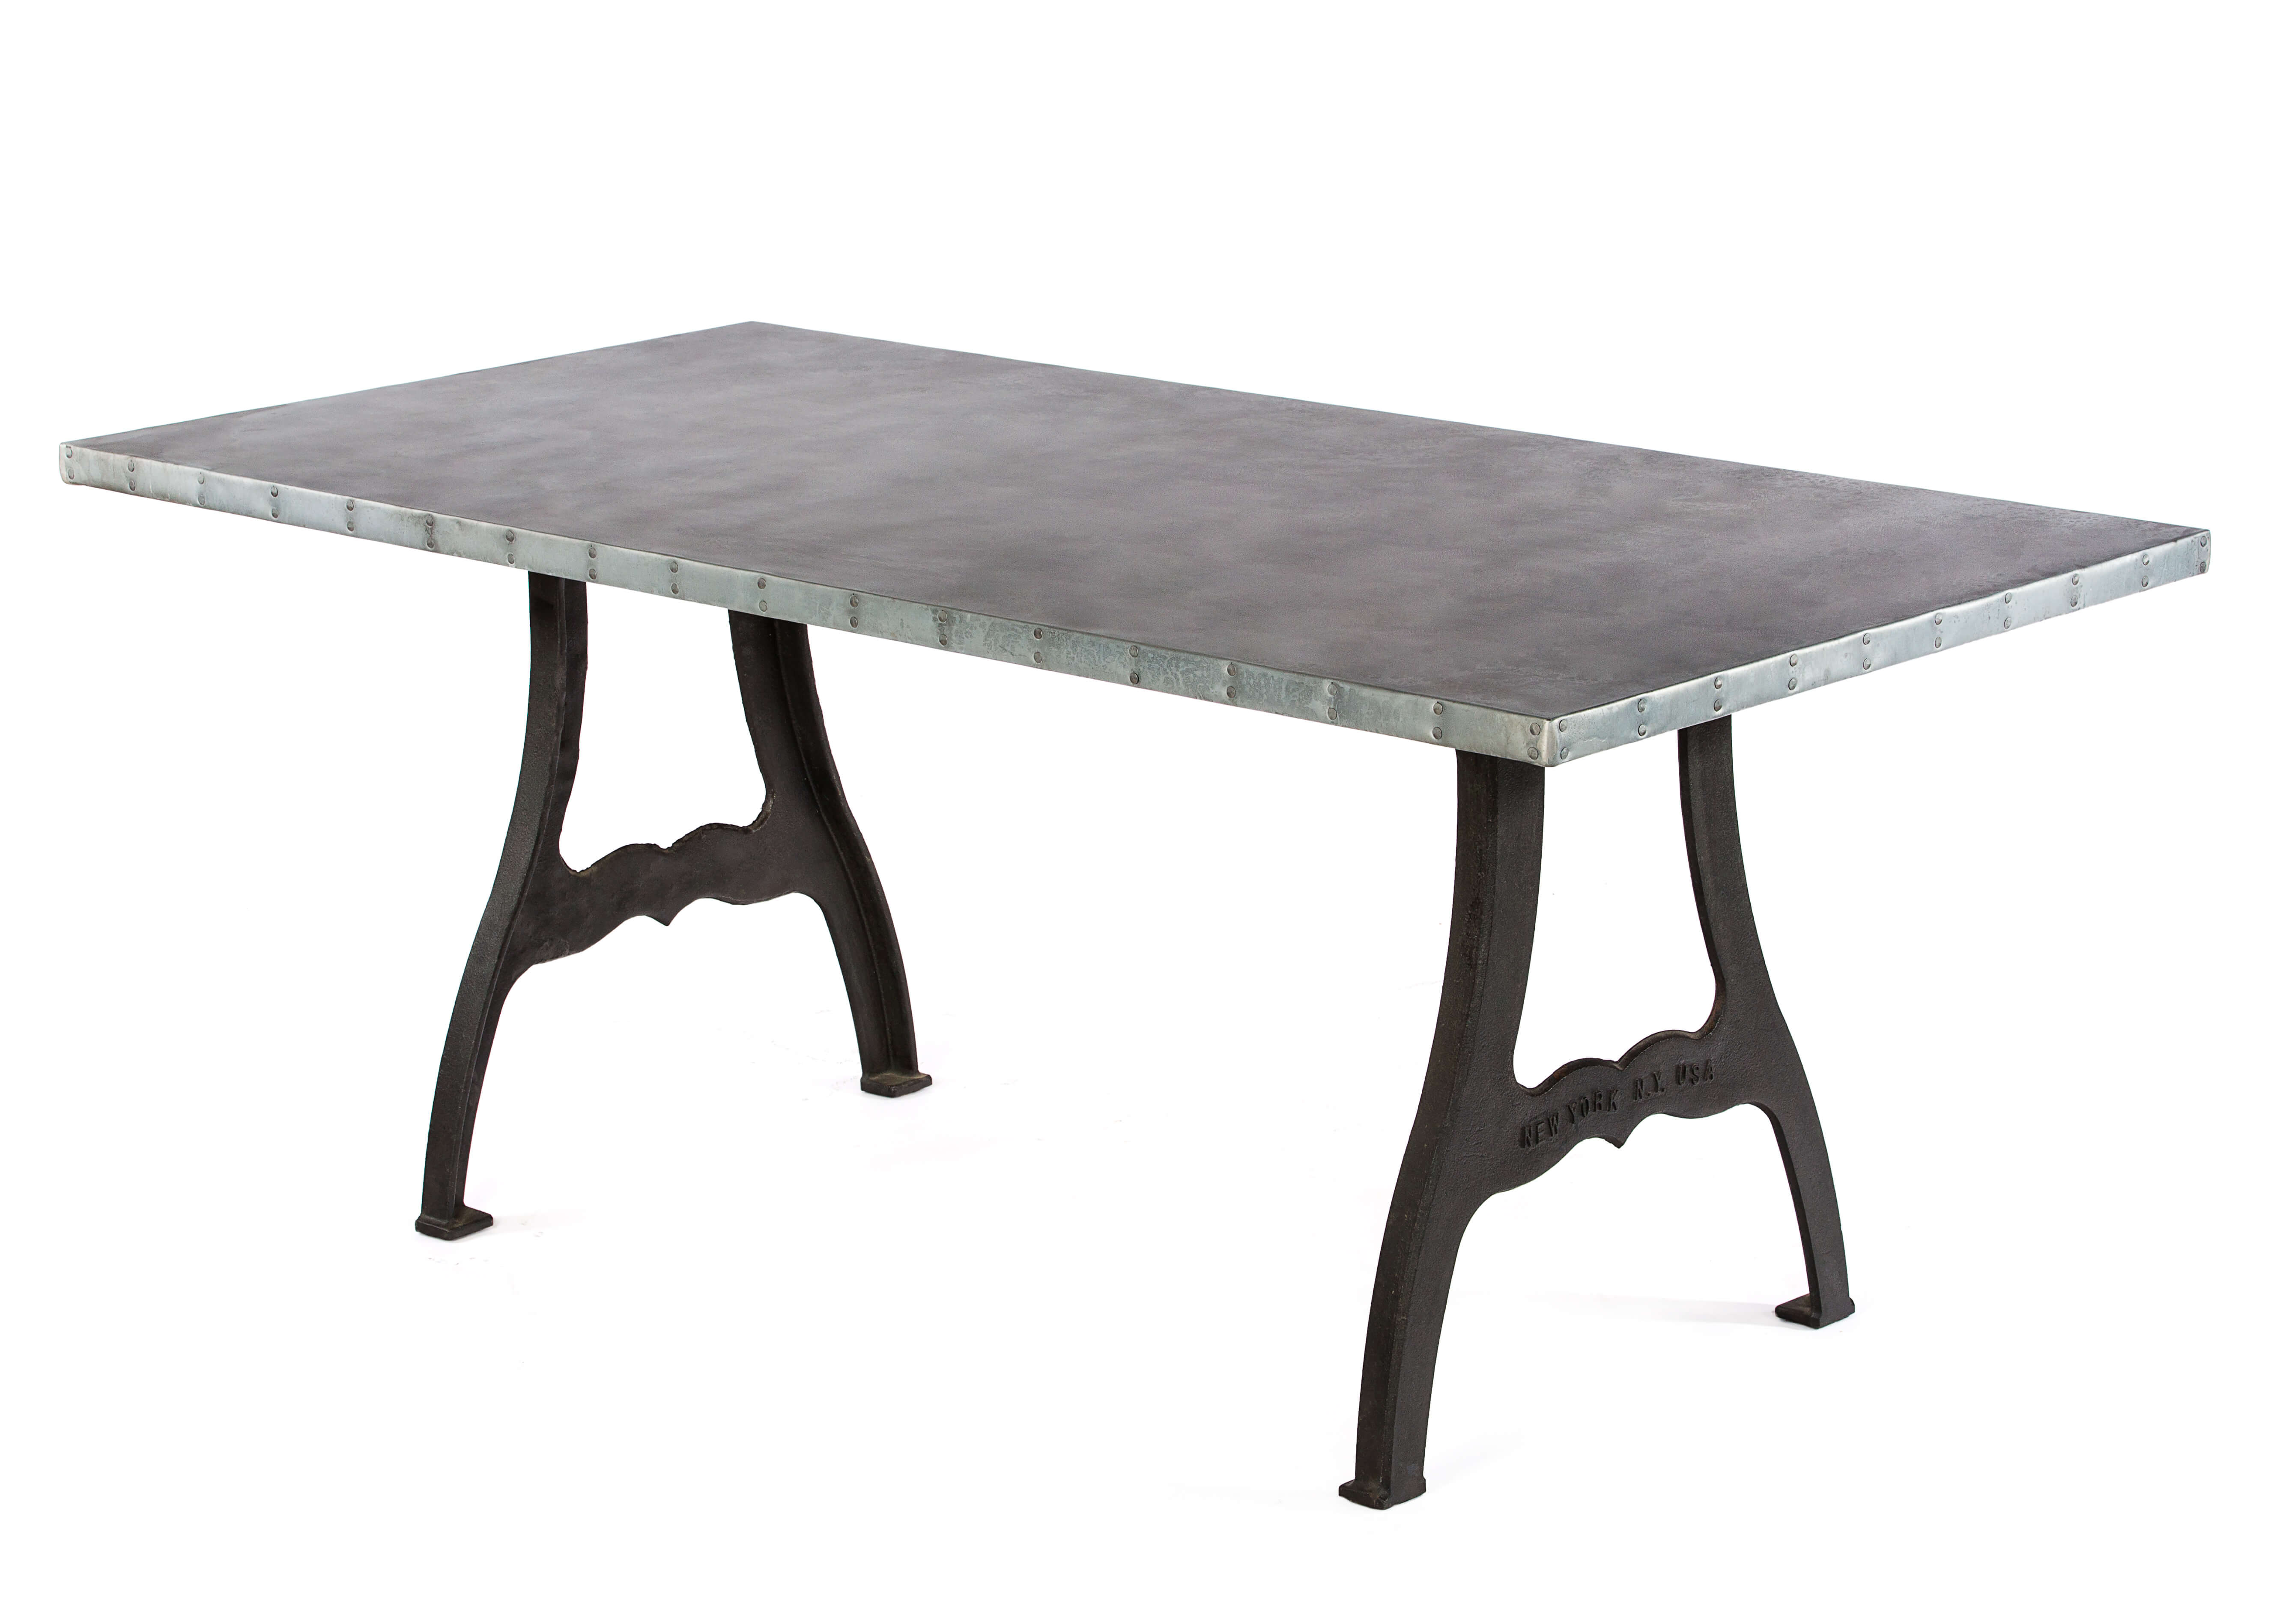 "Zinc Rectangular Table | Williamsburg Table | BLACKENED BRONZE | Black | CUSTOM SIZE L 64 W 30 H 36 | 1.5"" Standard 